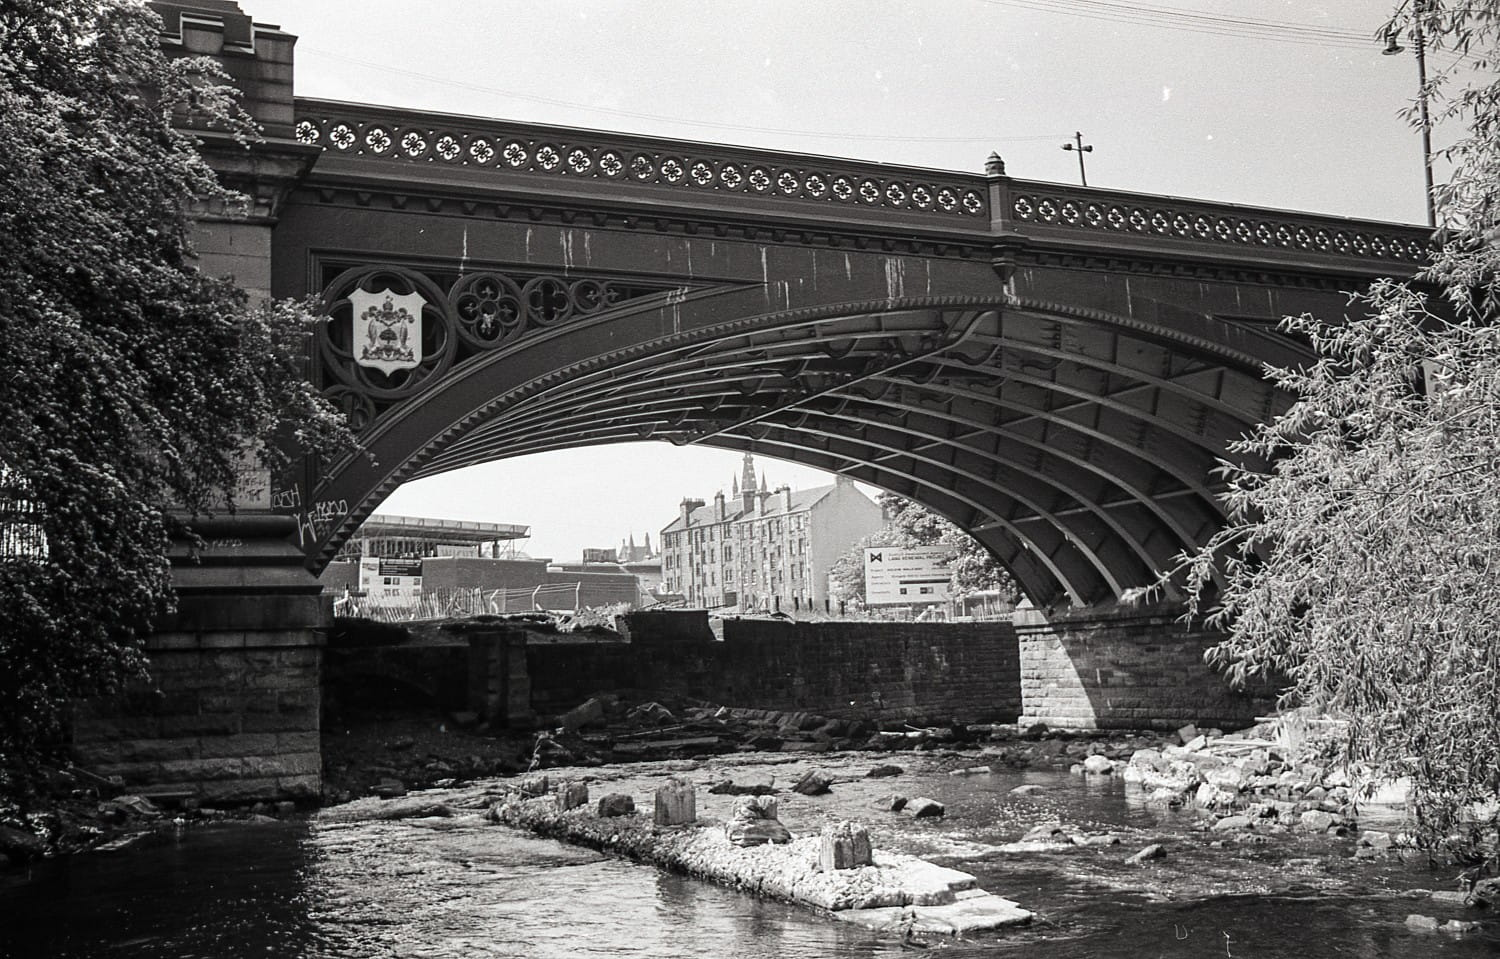 Another view below Kelvinbridge, with the supports of the old, low level bridge still in place